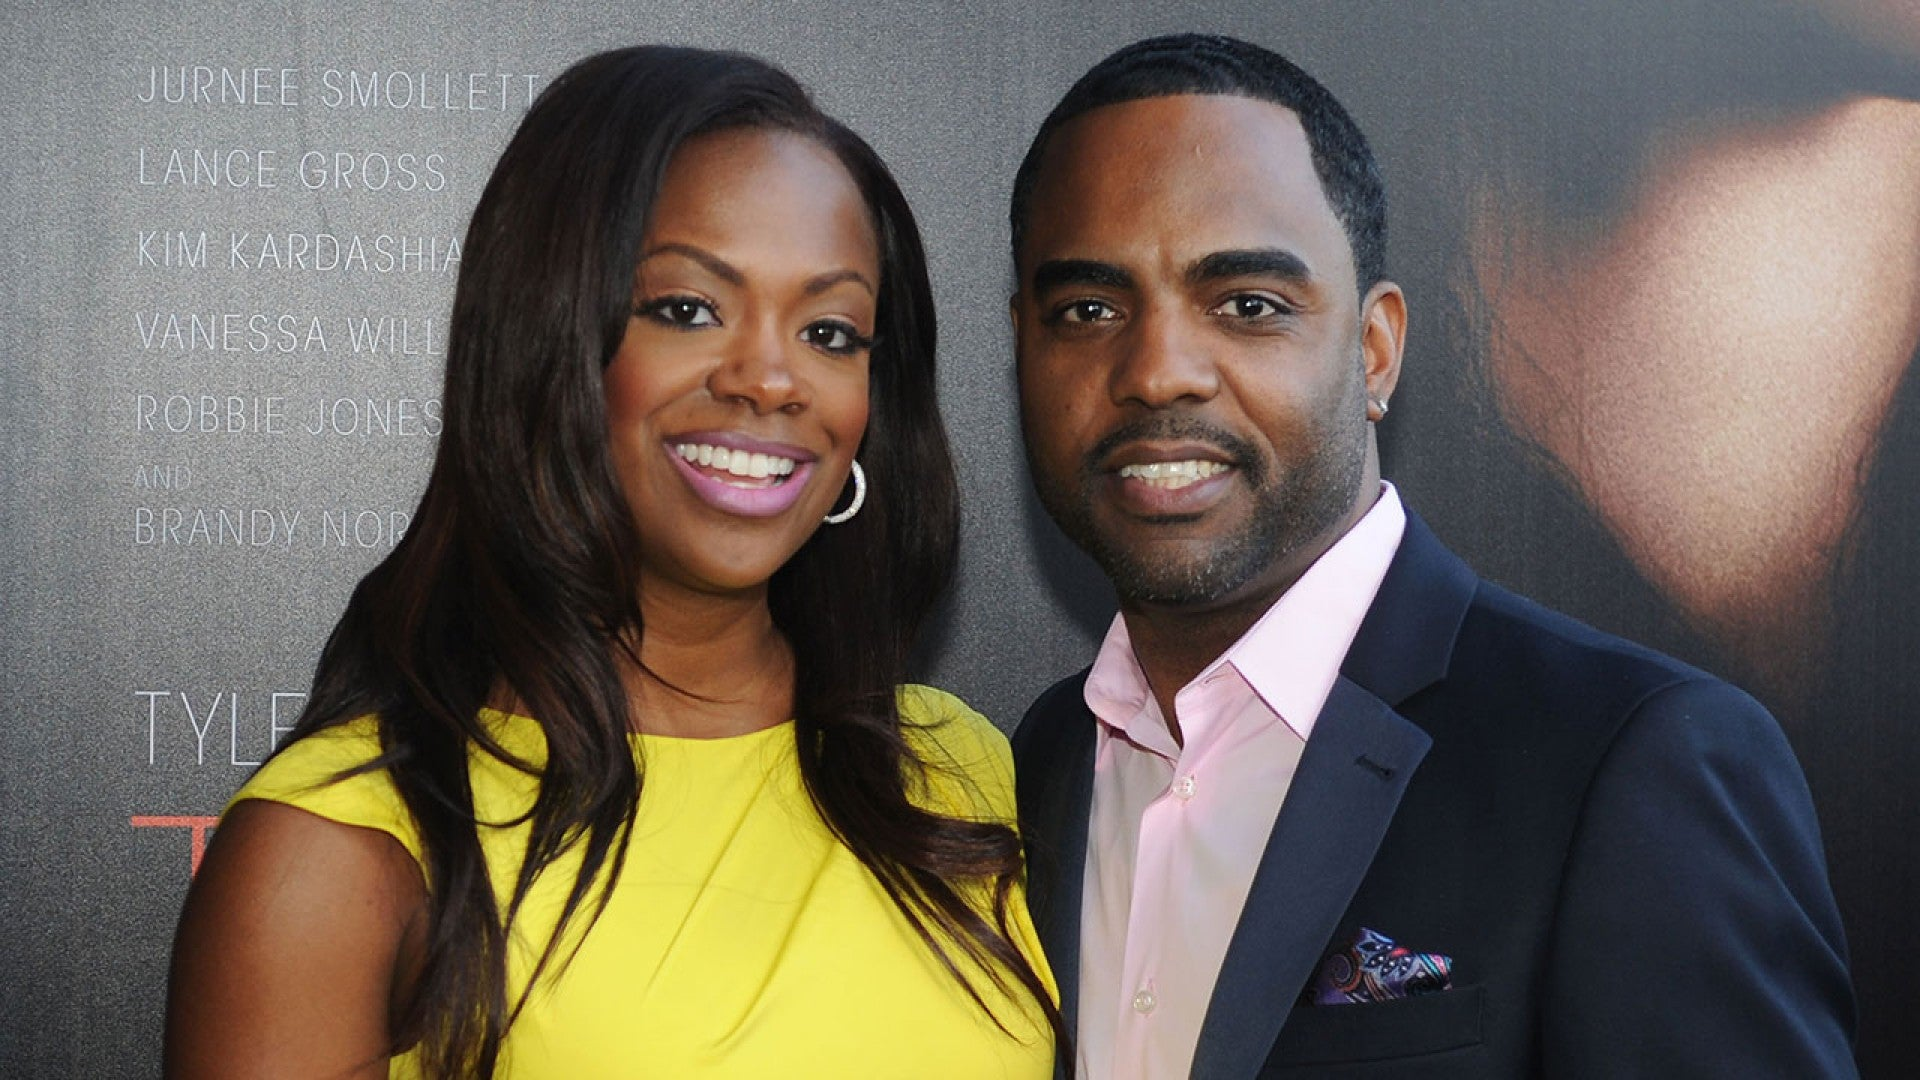 kandi-burruss-floods-her-social-media-account-with-photos-from-todd-tuckers-birthday-party